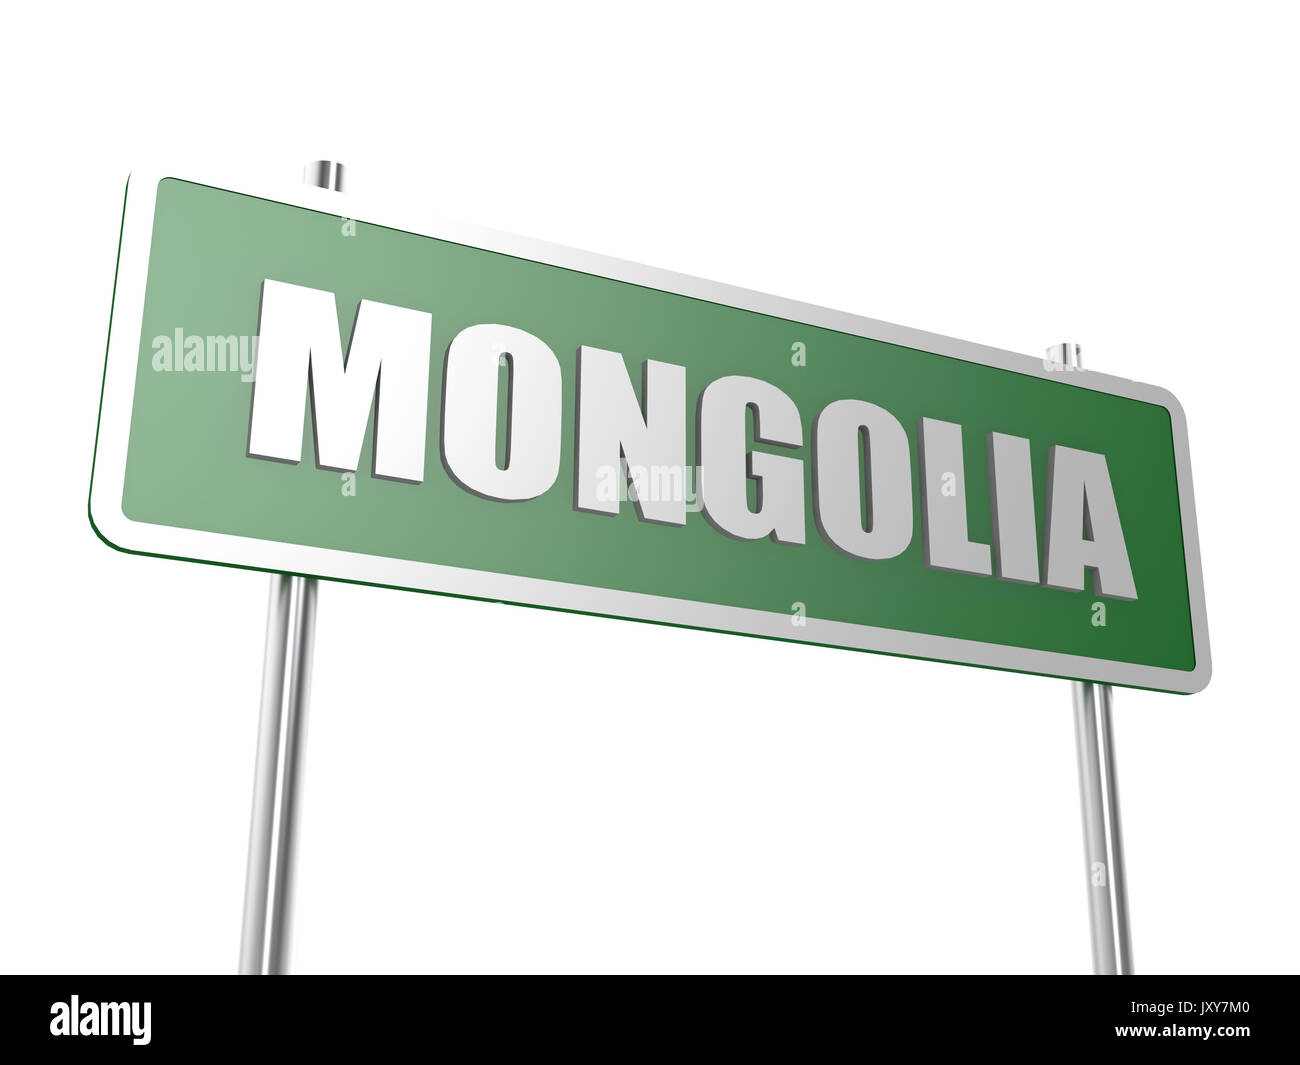 Mongolia concept image with hi-res rendered artwork that could be used for any graphic design. - Stock Image